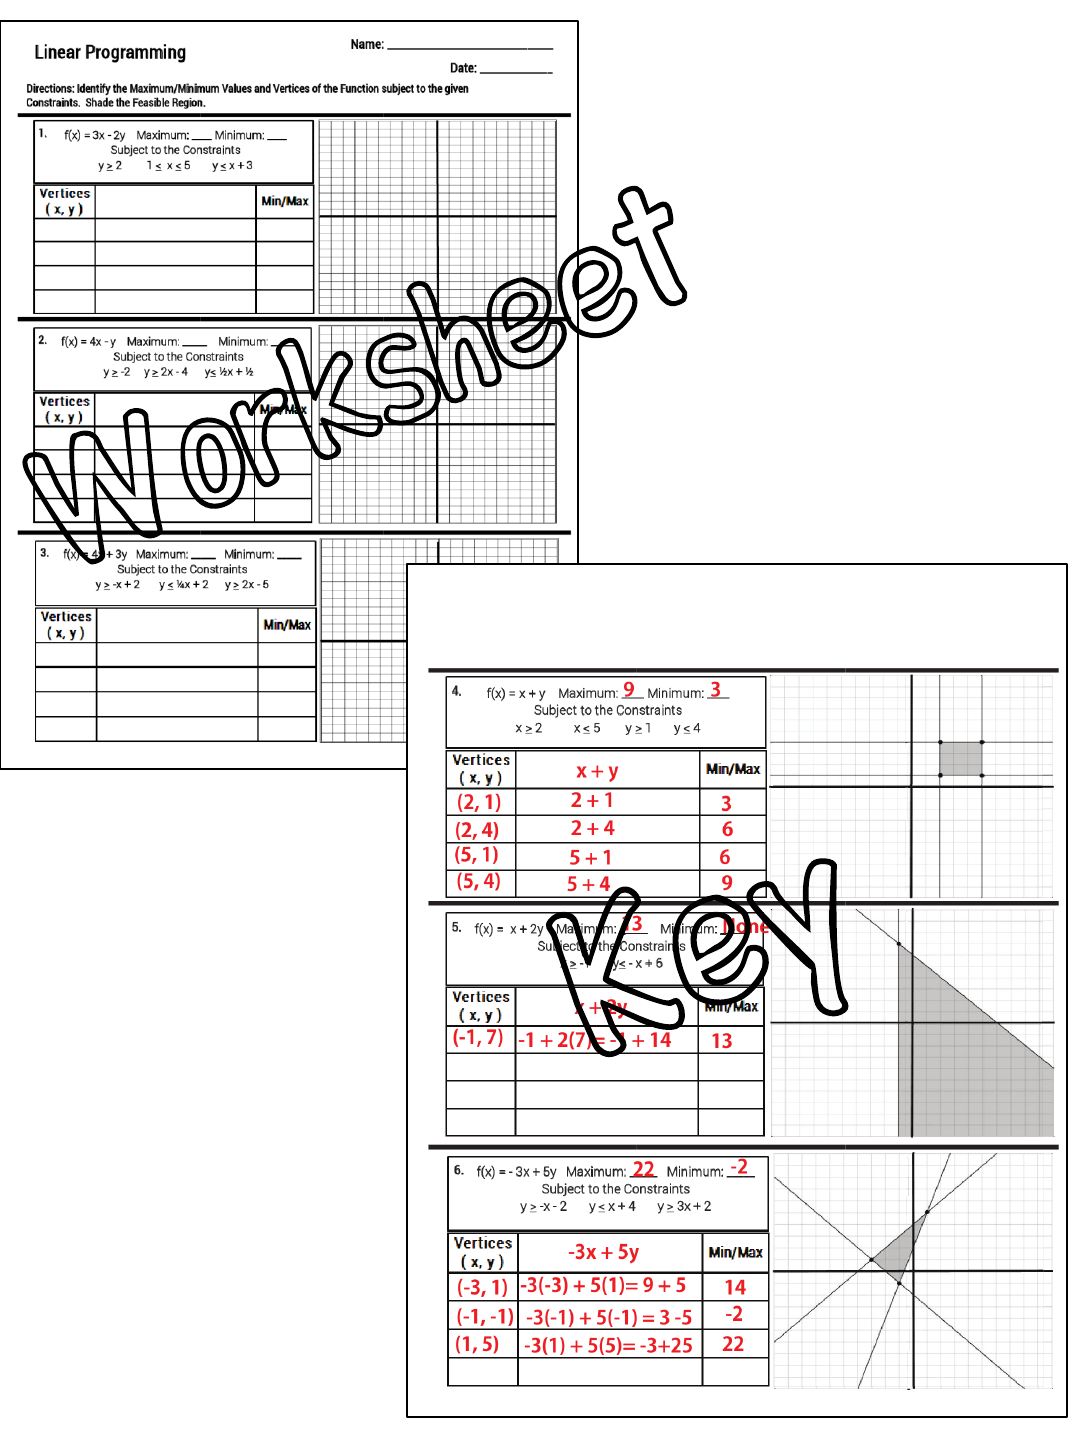 Linear Programming Worksheet key - Linear Programming Worksheet ...